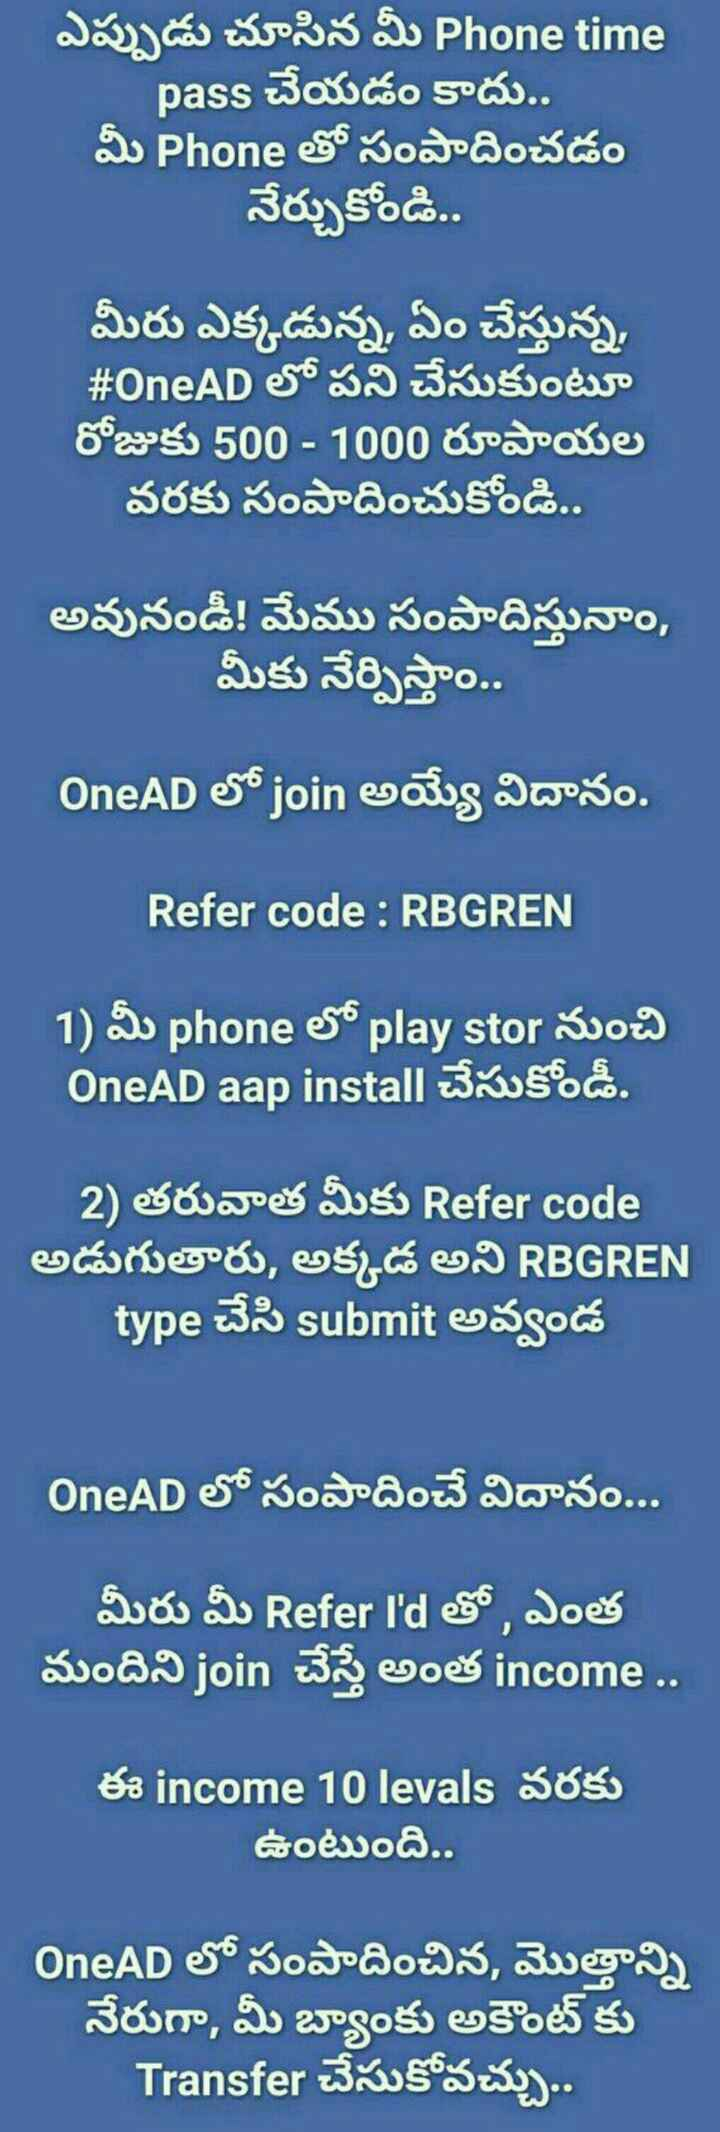 money income Onead - ShareChat